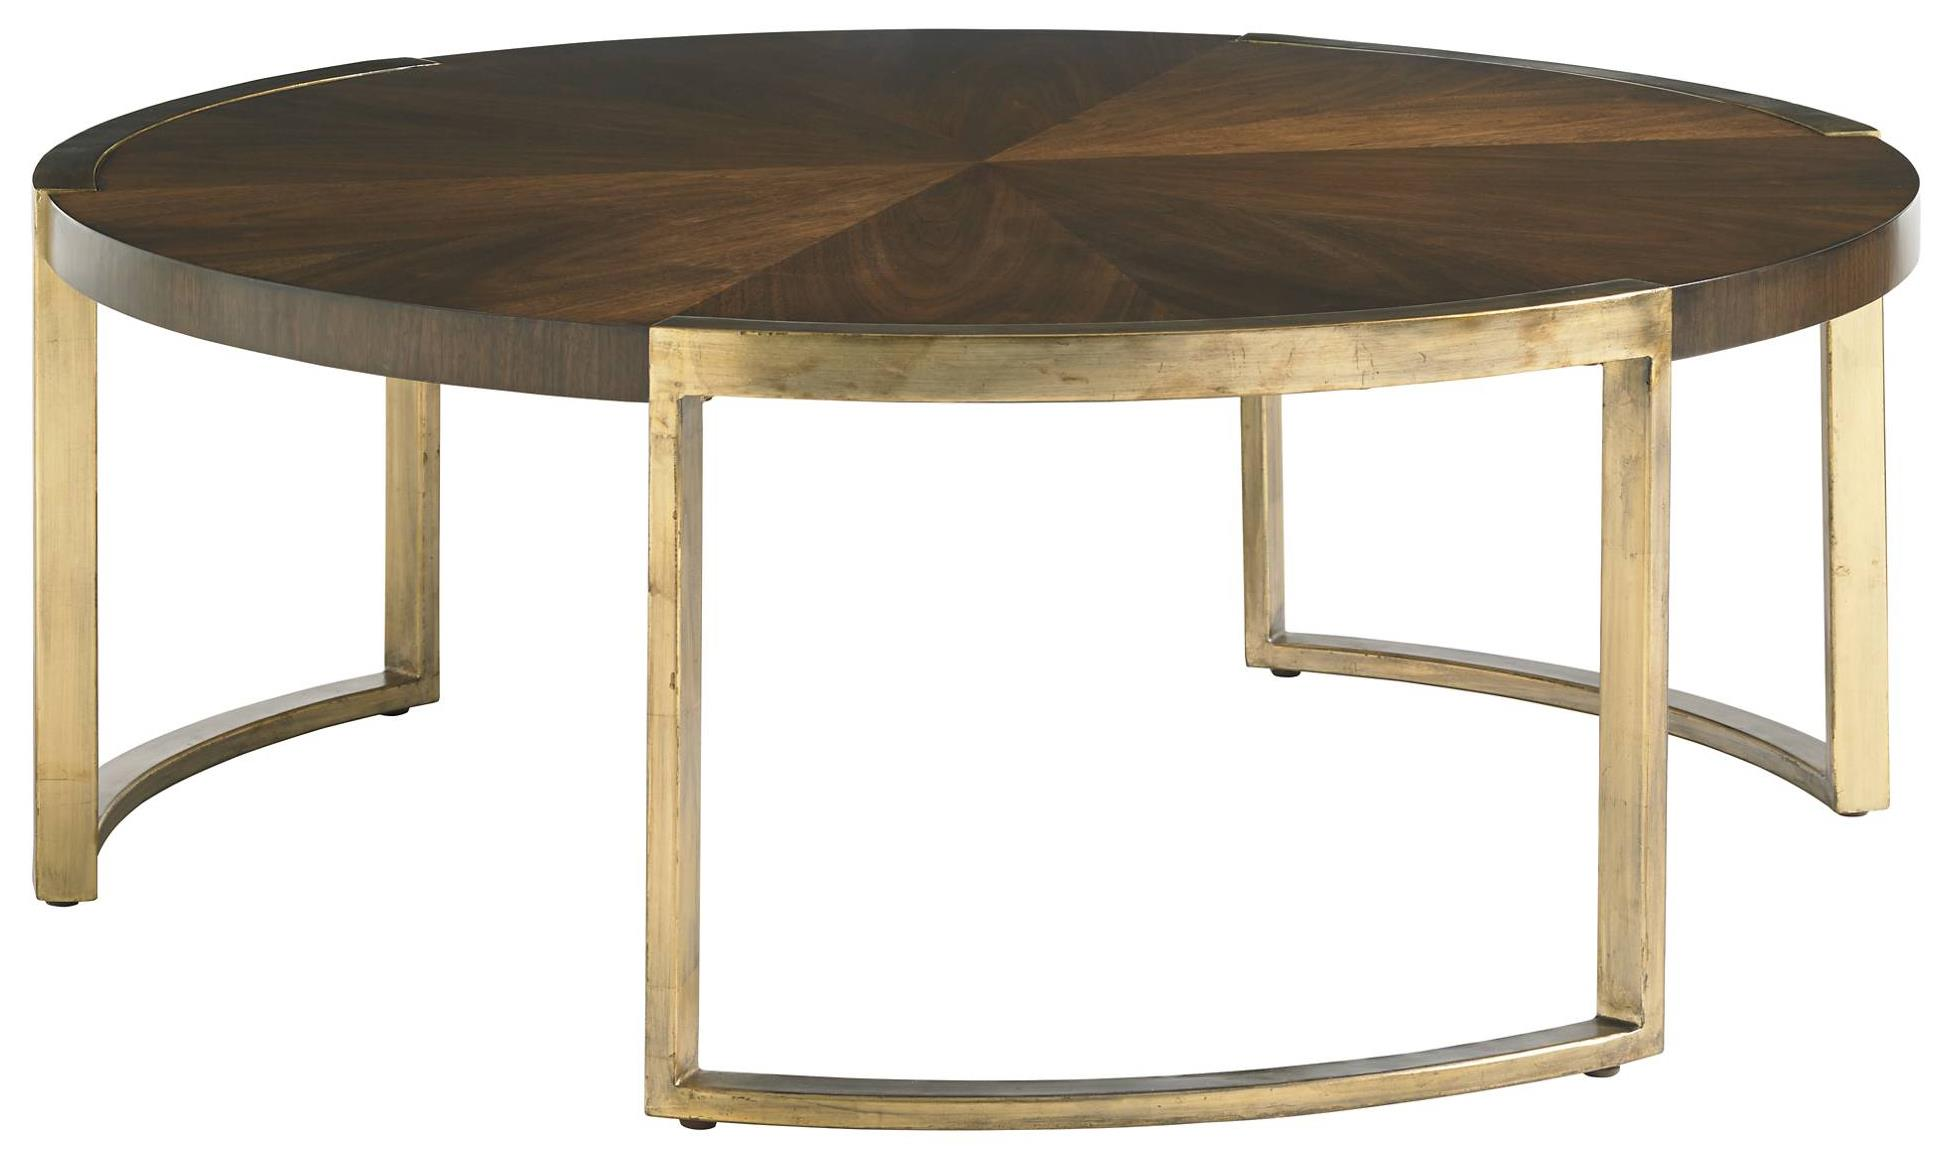 Stanley Furniture Crestaire 436 15 01 Mid Century Modern Autry Round Cocktail Table With Walnut